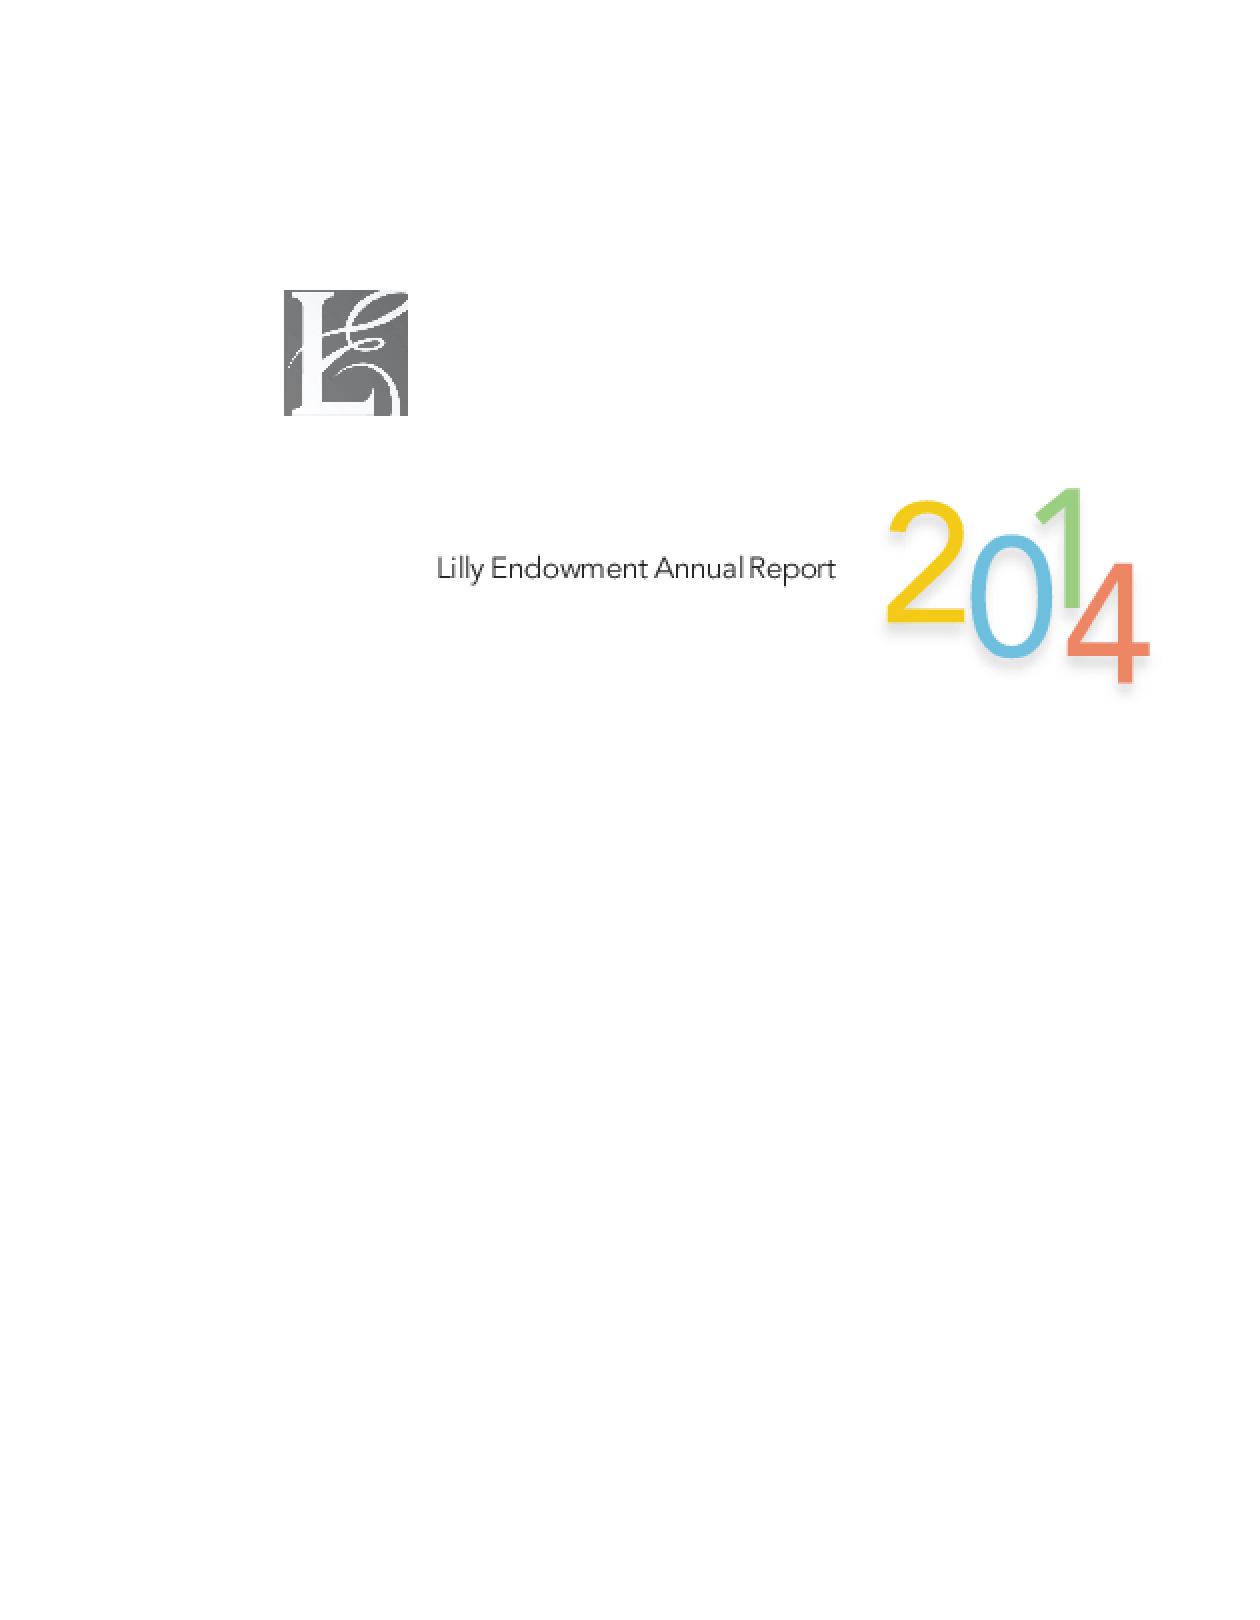 Lilly Endowment Annual Report 2014